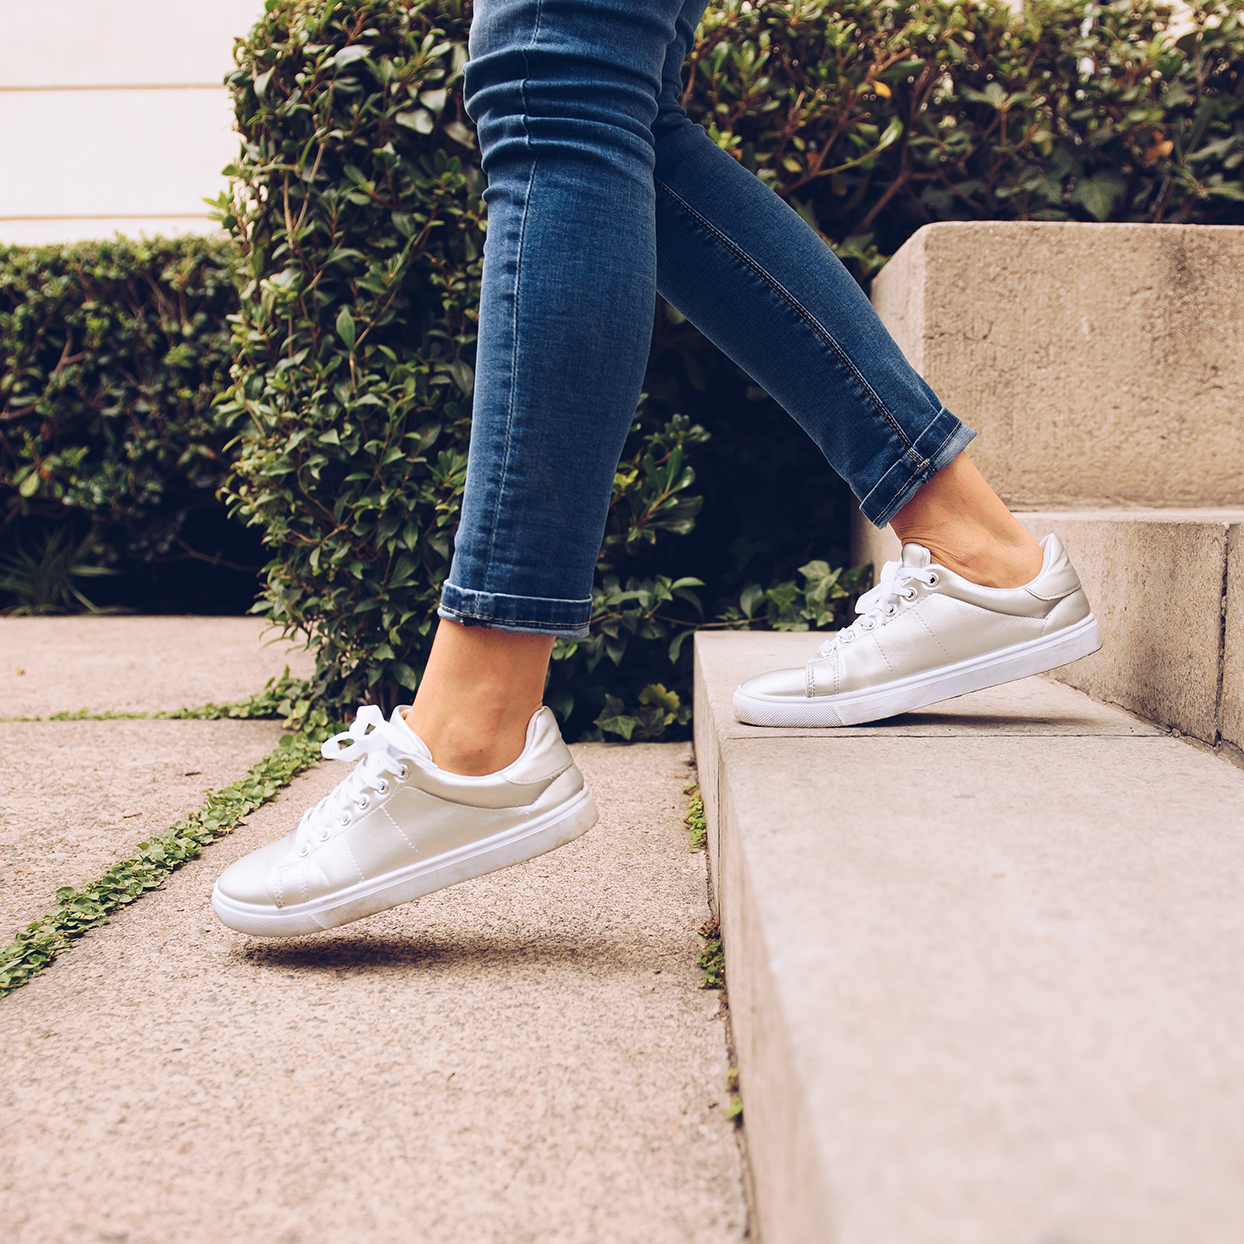 Woman walking in sneakers